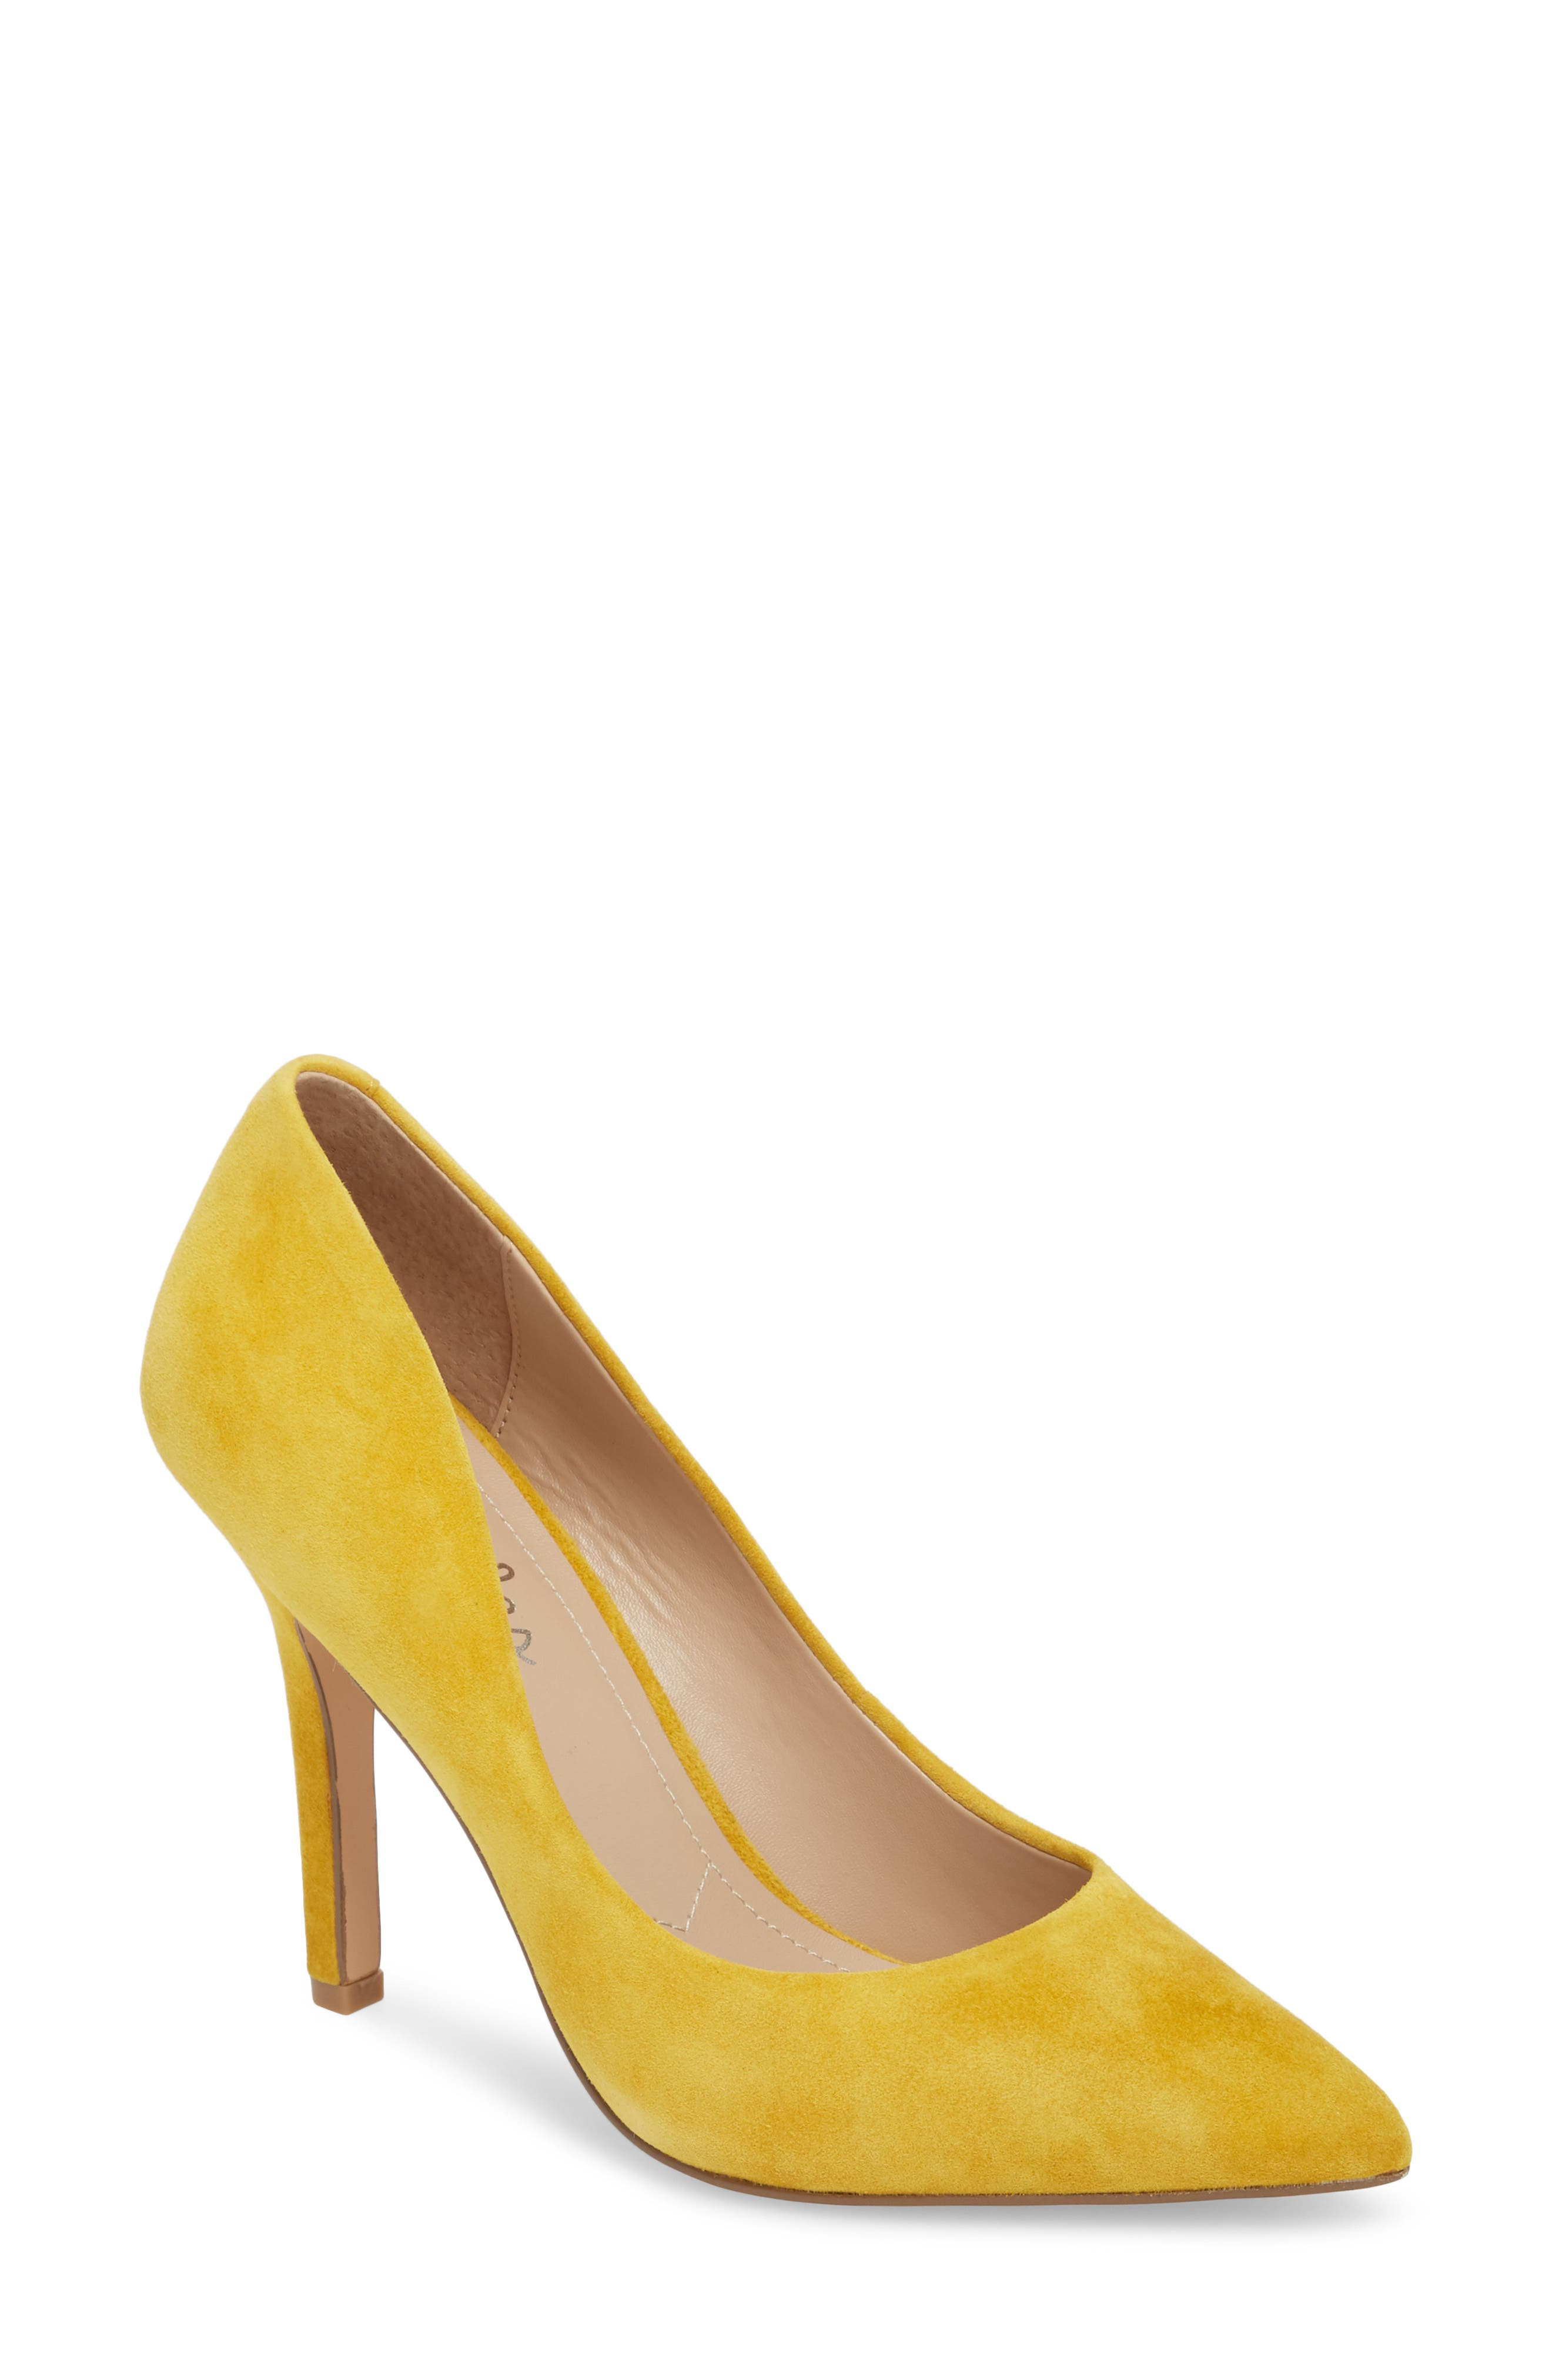 Maxx Pointy Toe Pump,                         Main,                         color, Canary Suede